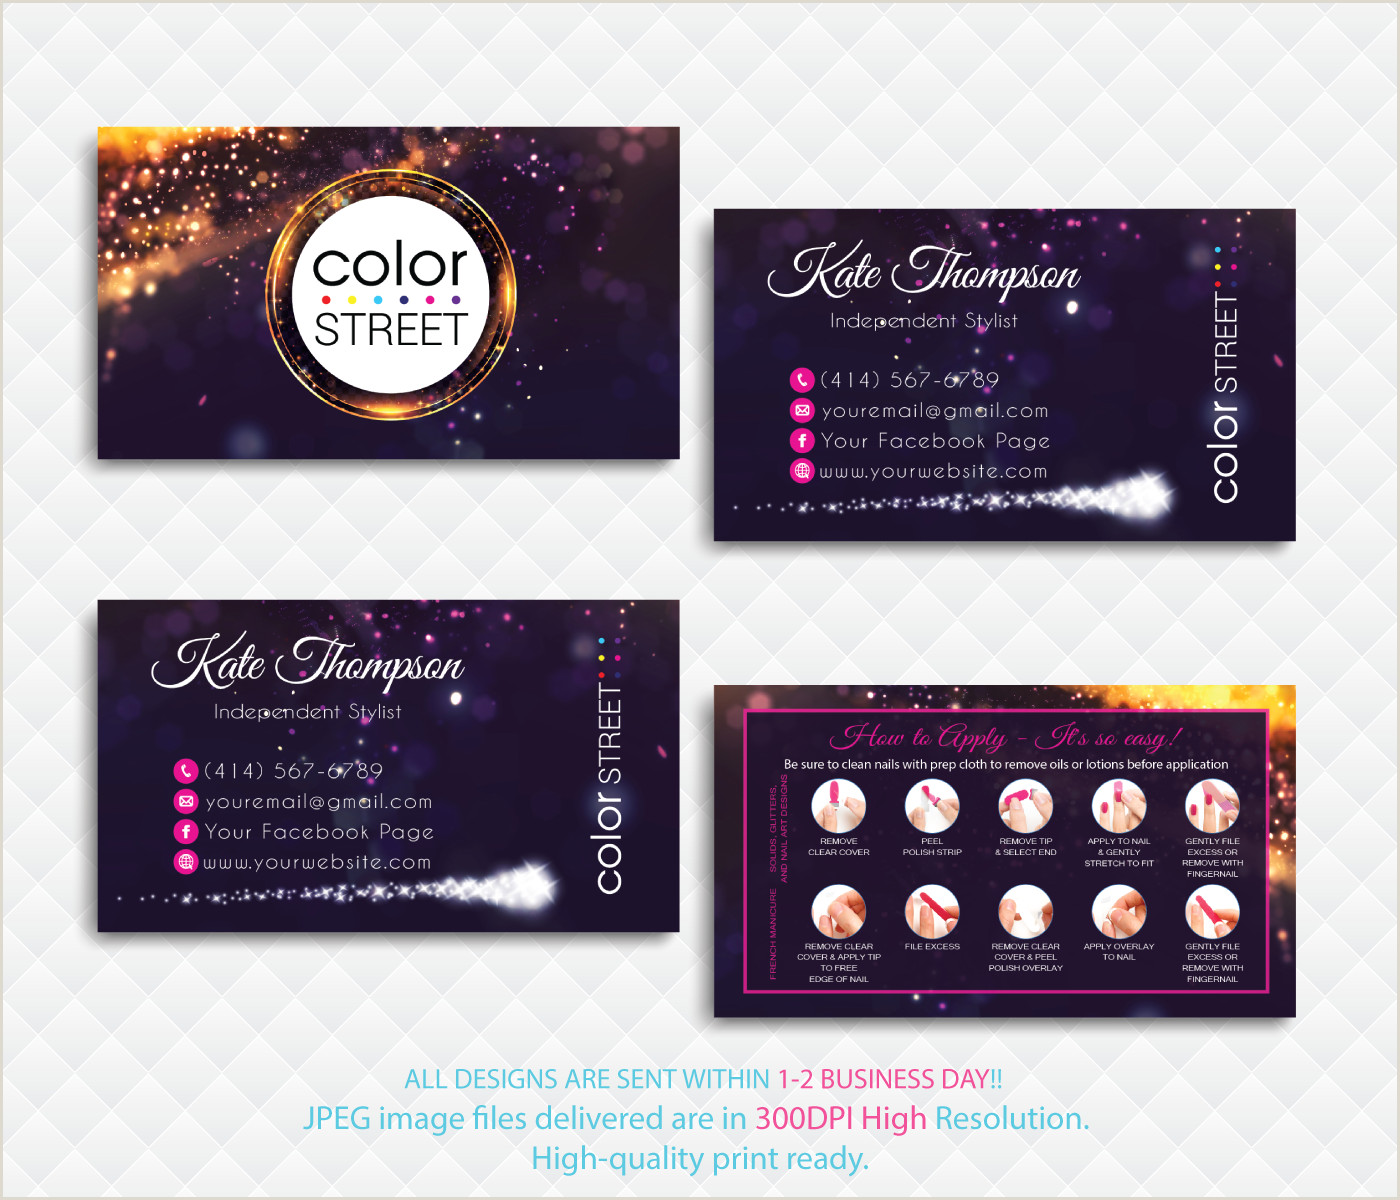 Business Cards Near Me Same Day Color Street Application Cards Color Street Business Card